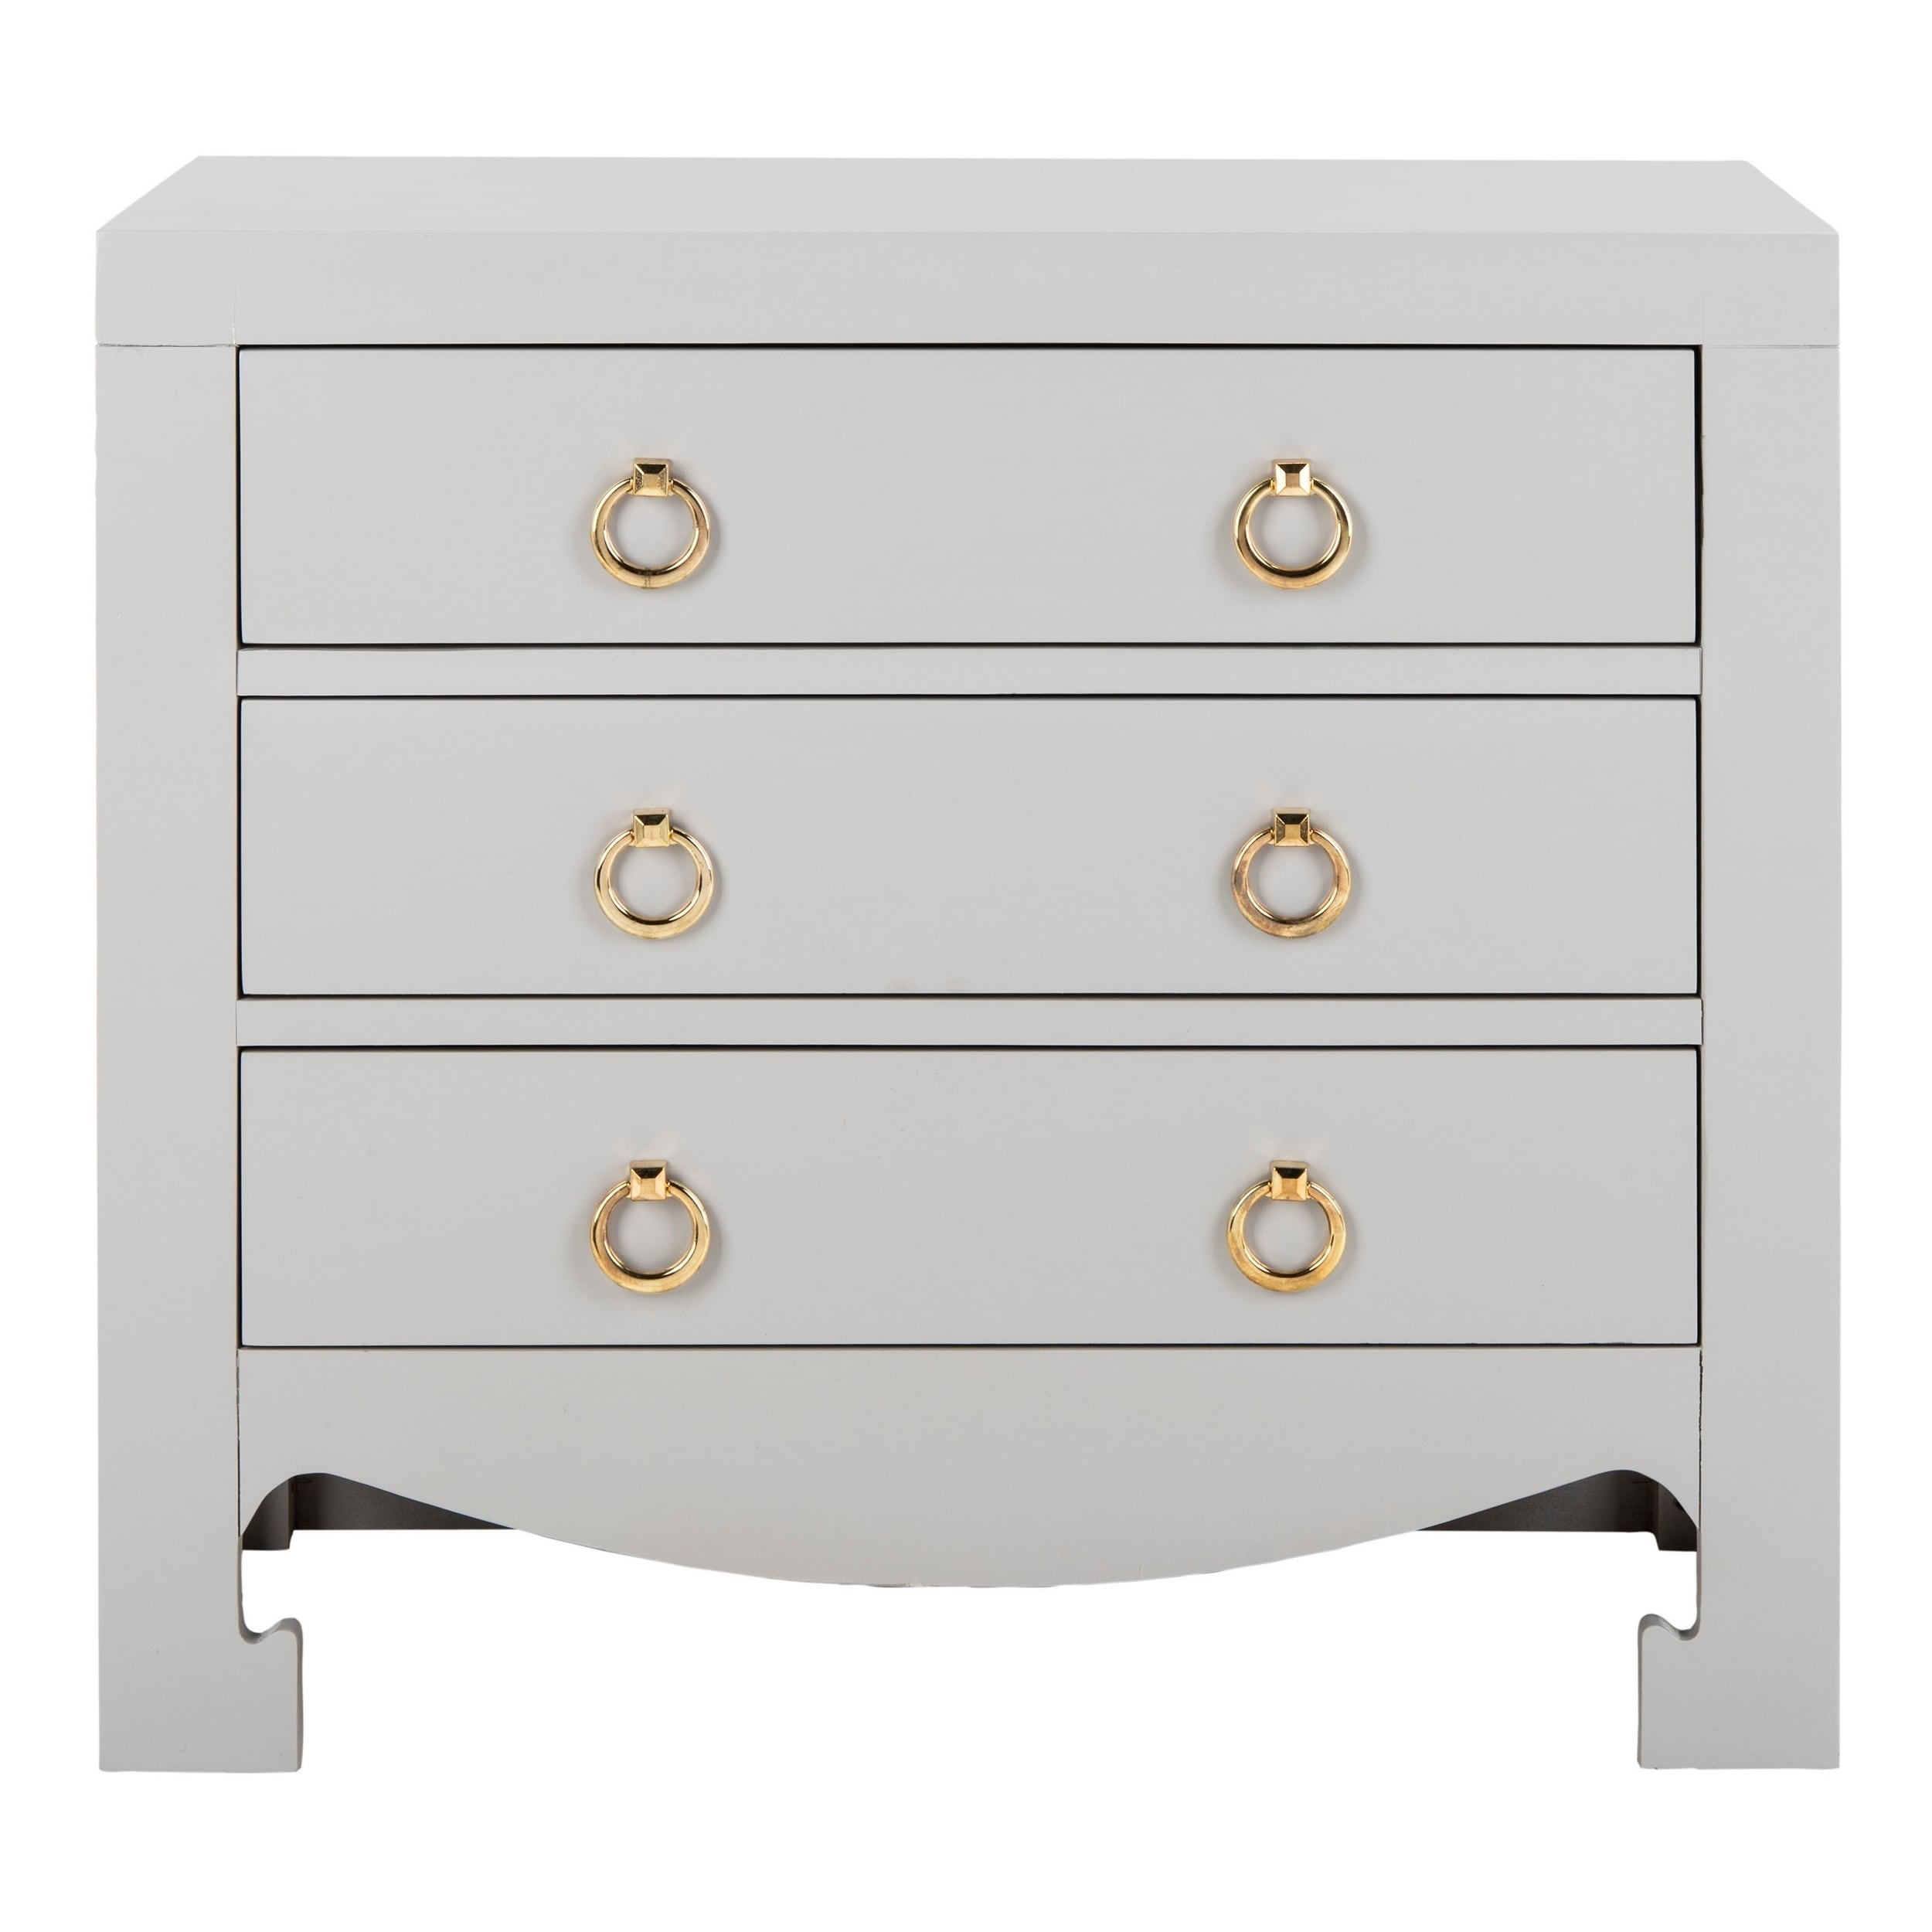 Safavieh Dion 3 Drawer Chest Grey Gold Free Shipping Today 22367121